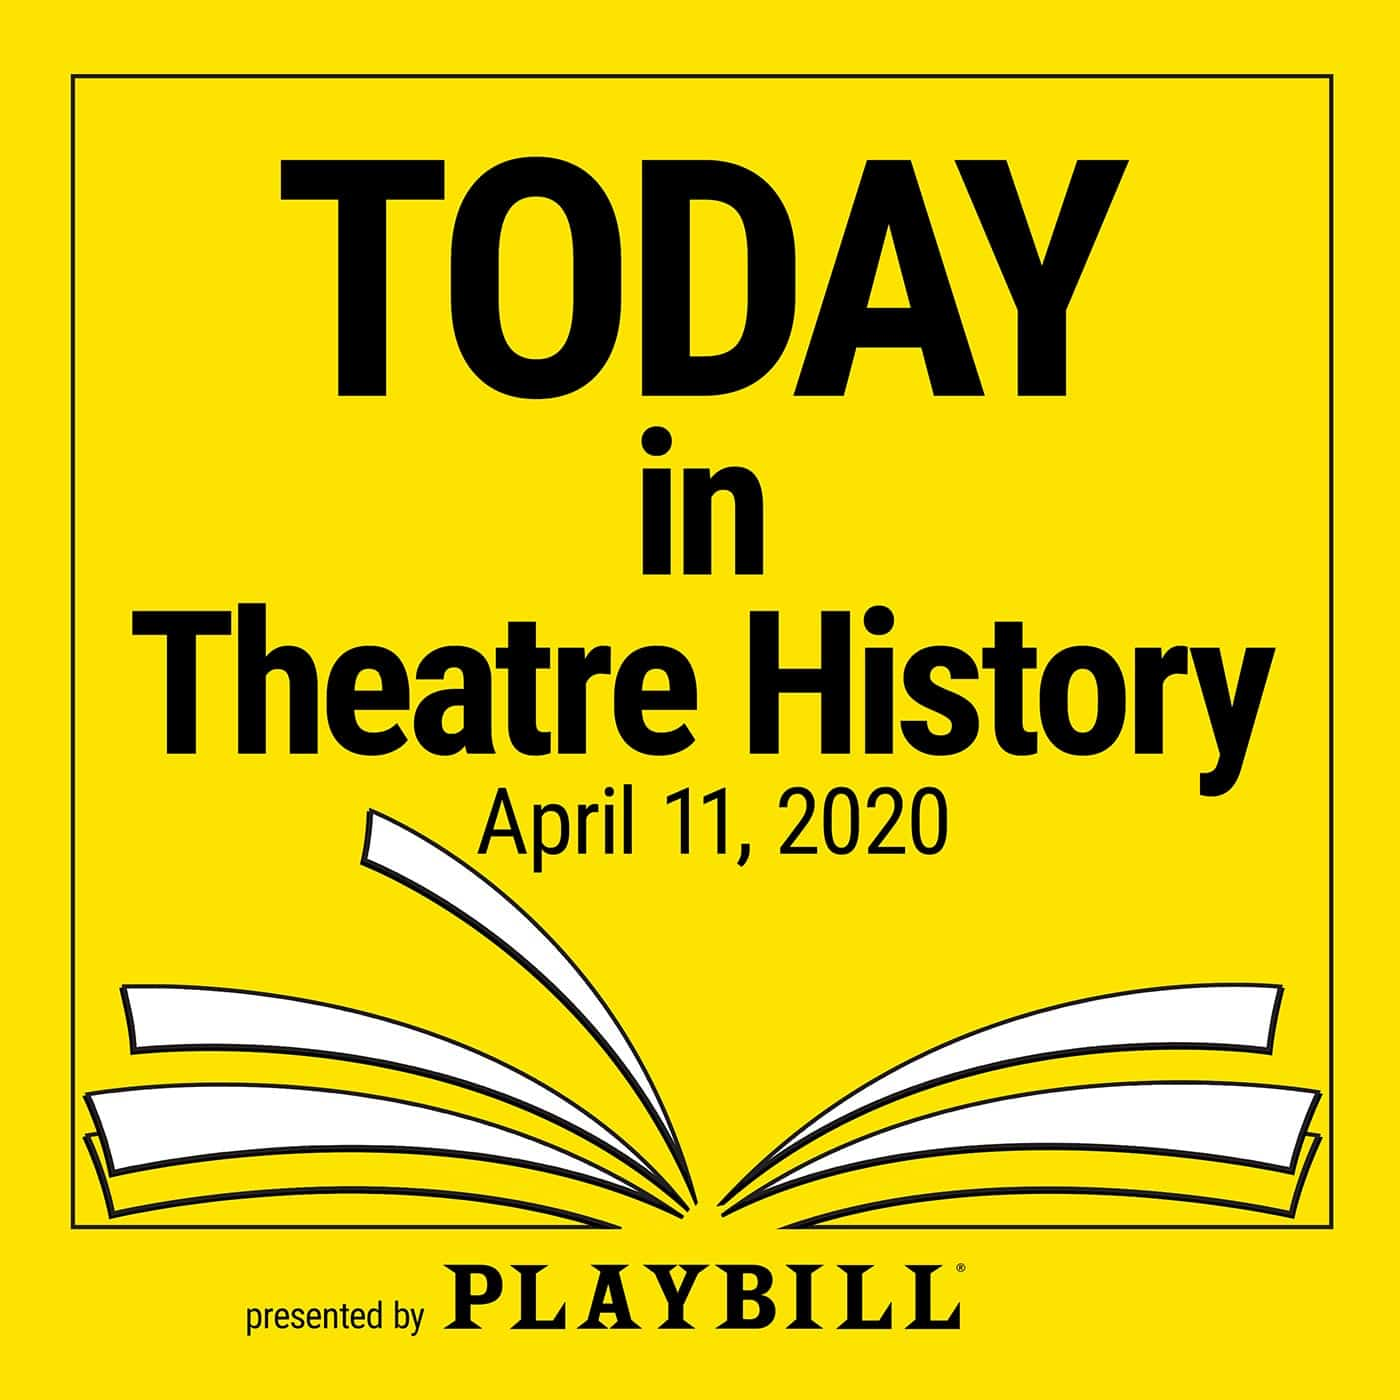 Today in Theatre History - April 11, 2020: Pygmalion and Miss Saigon premiere, Joel Grey celebrates his birthday, and more.